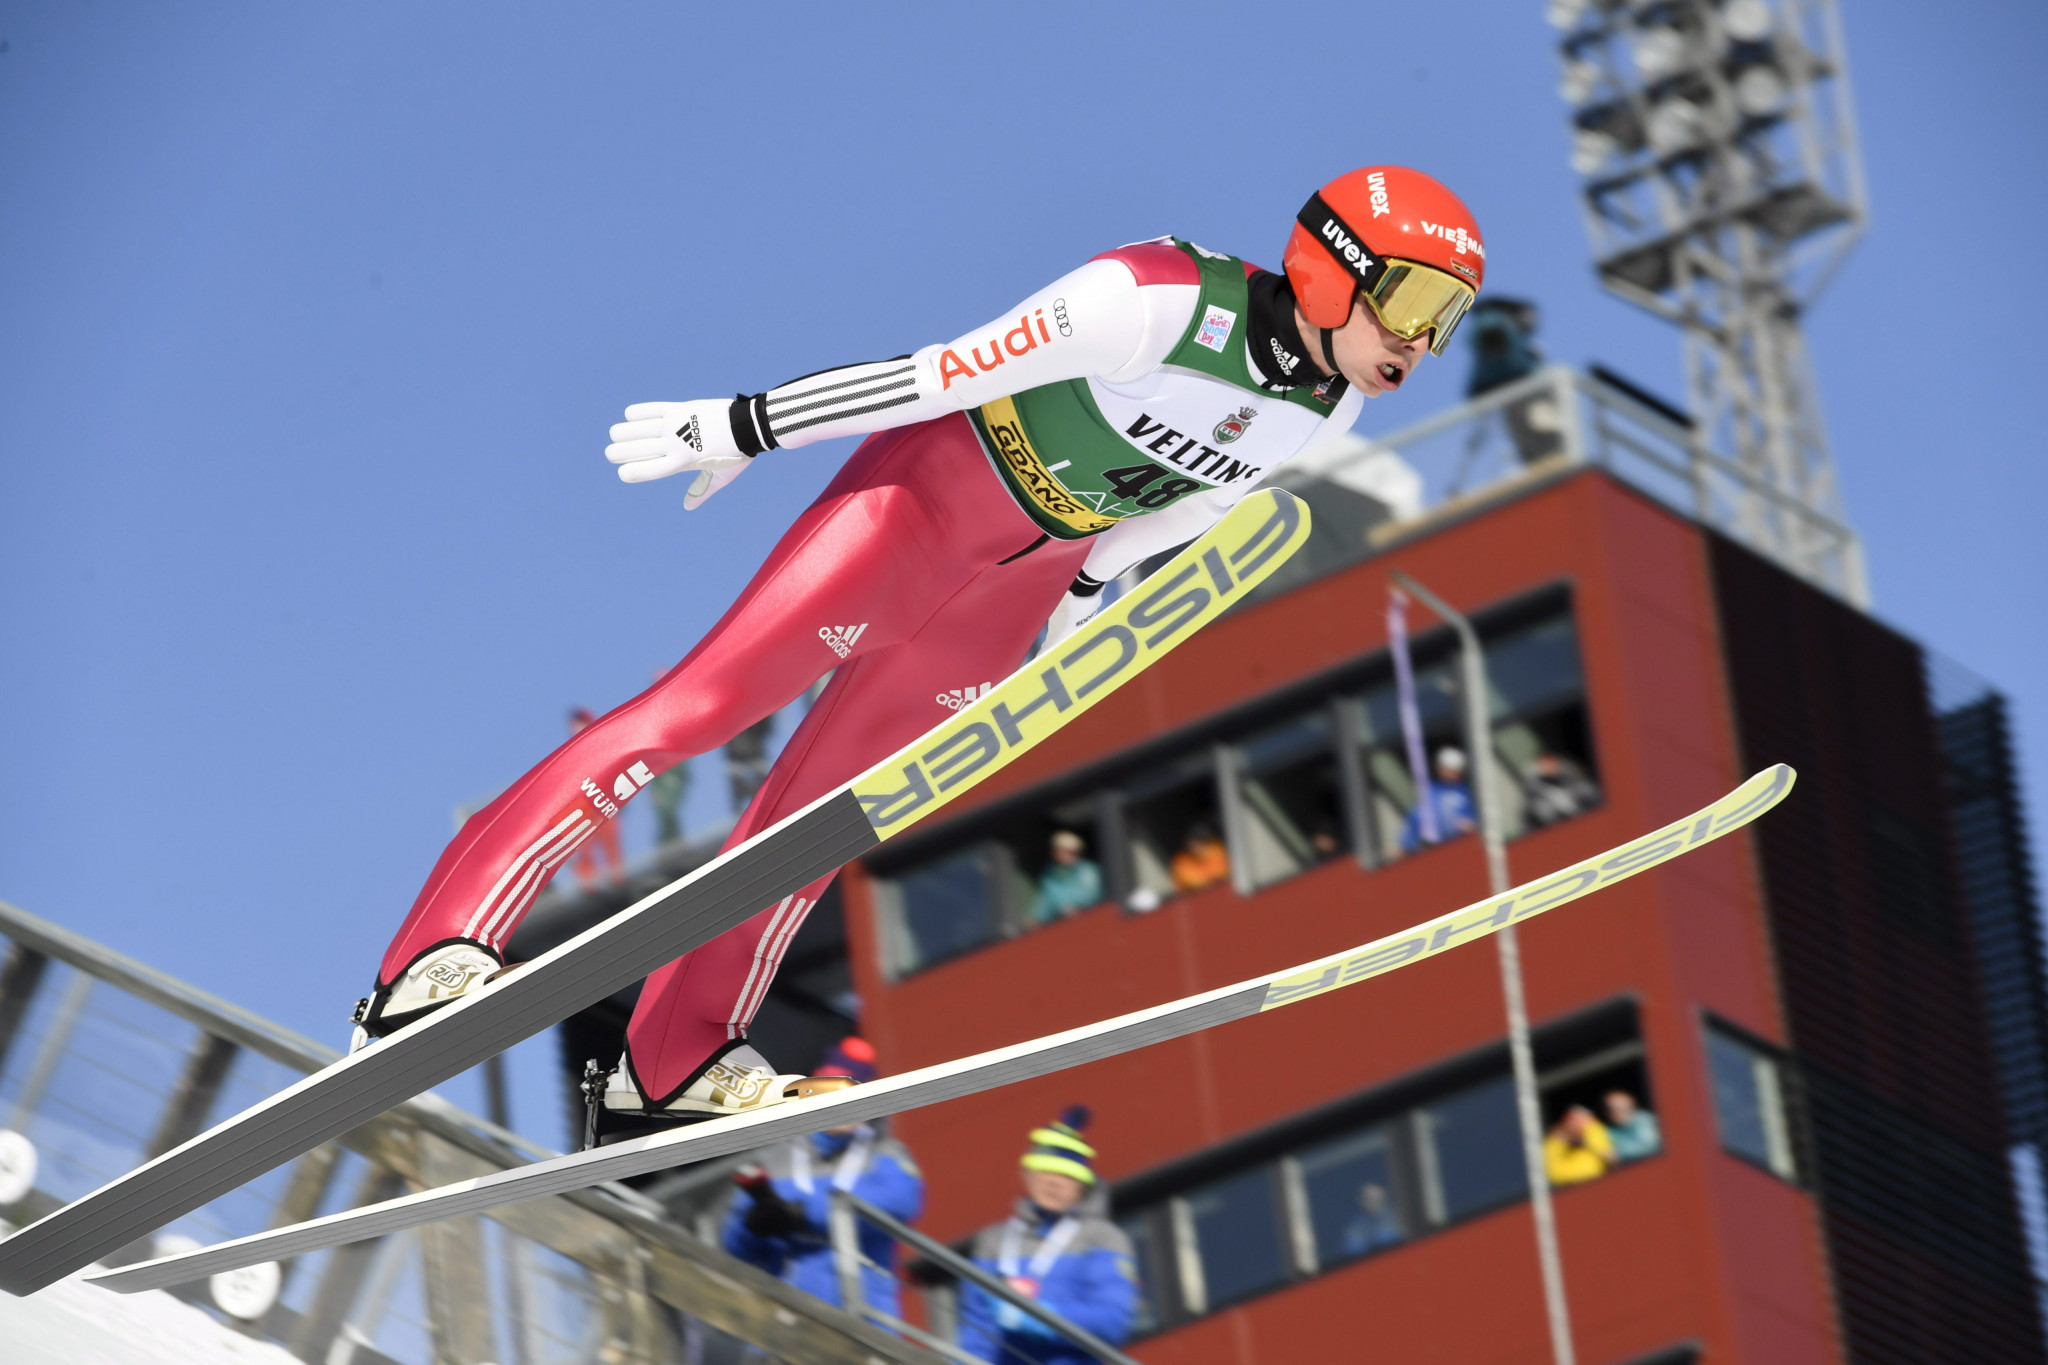 Frenzel wins thriller against Watabe at Nordic Combined World Cup